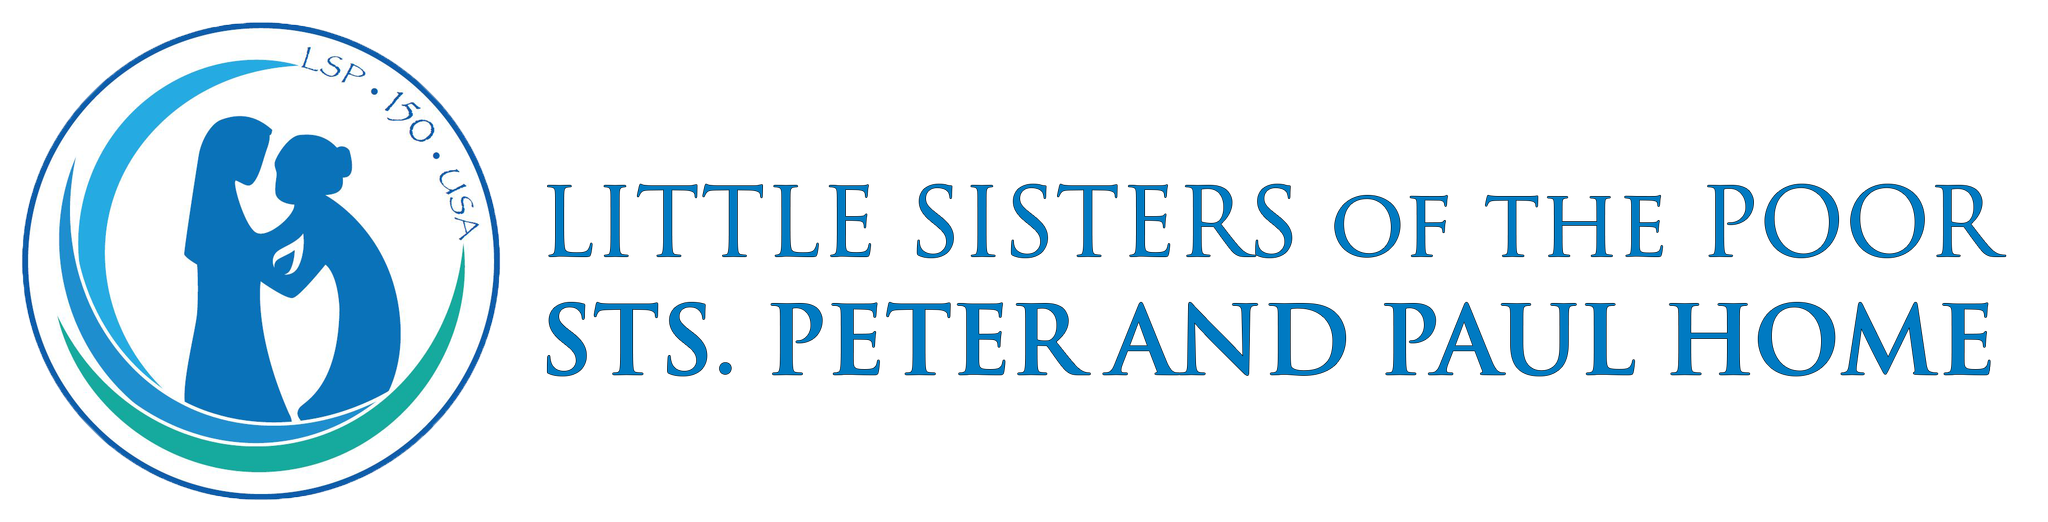 Little Sisters of the Poor Pittsburgh